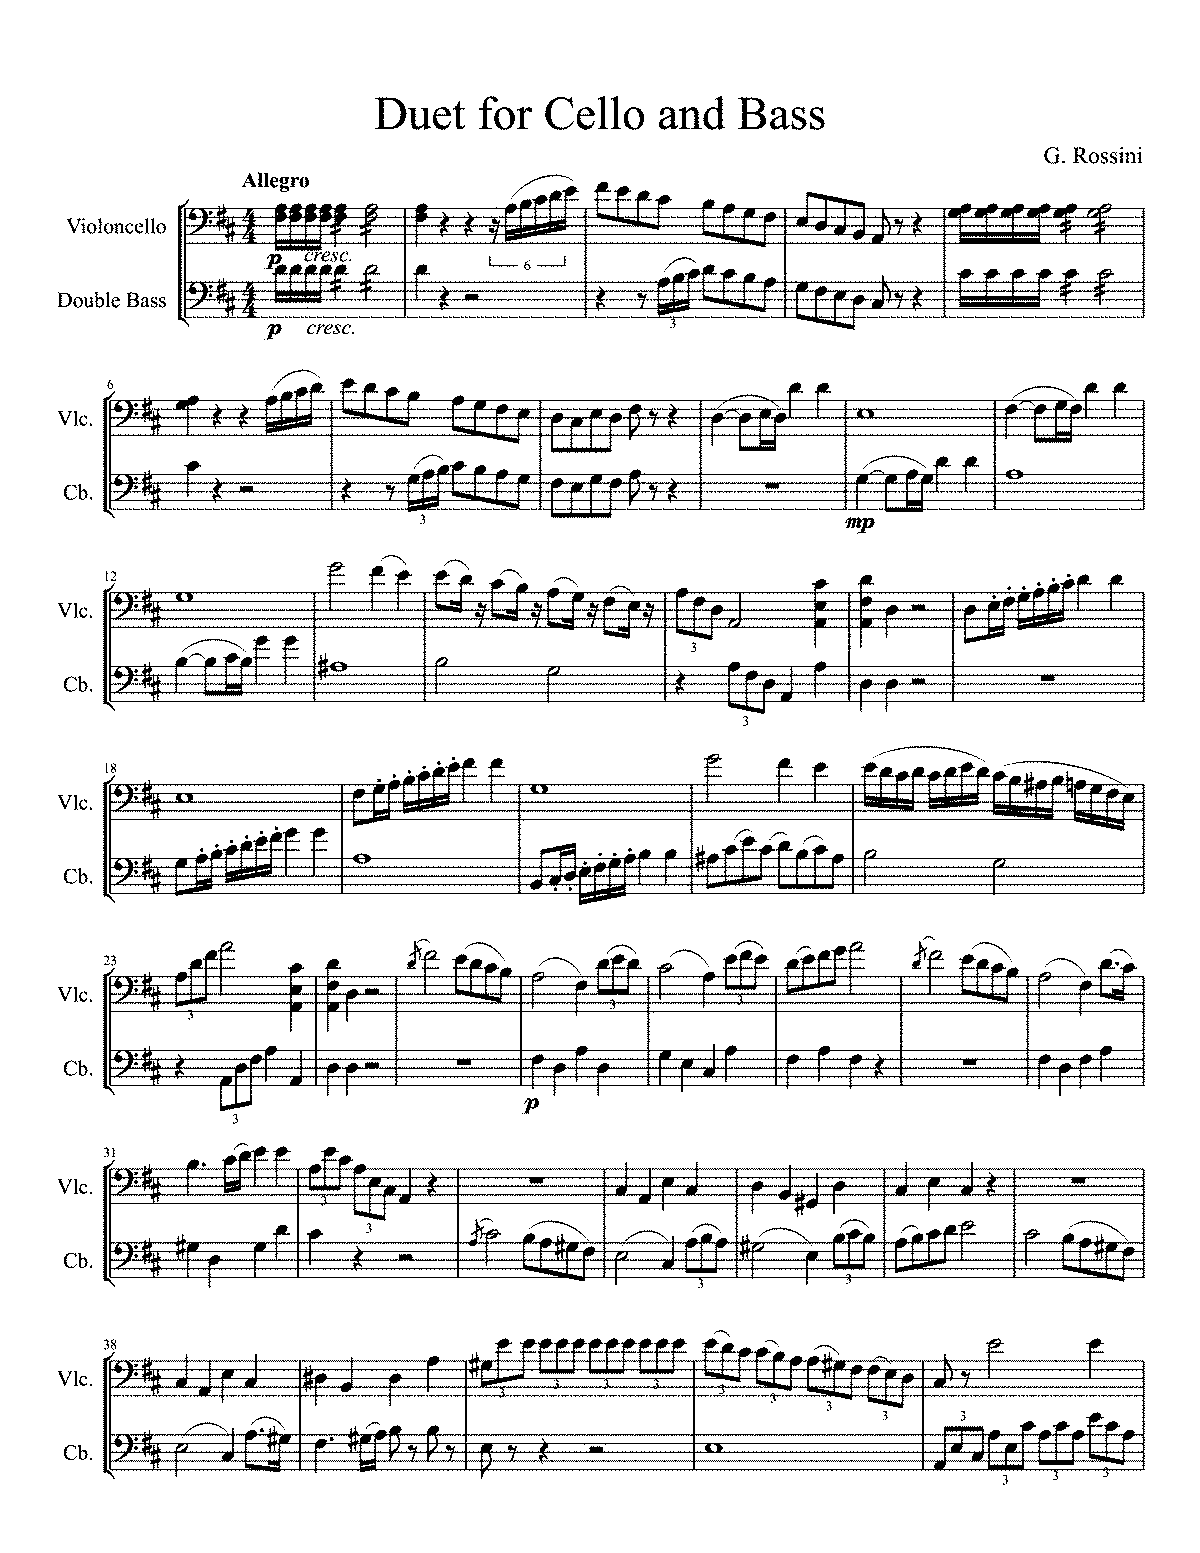 PMLP74382-rossini duet for cello and bass.pdf